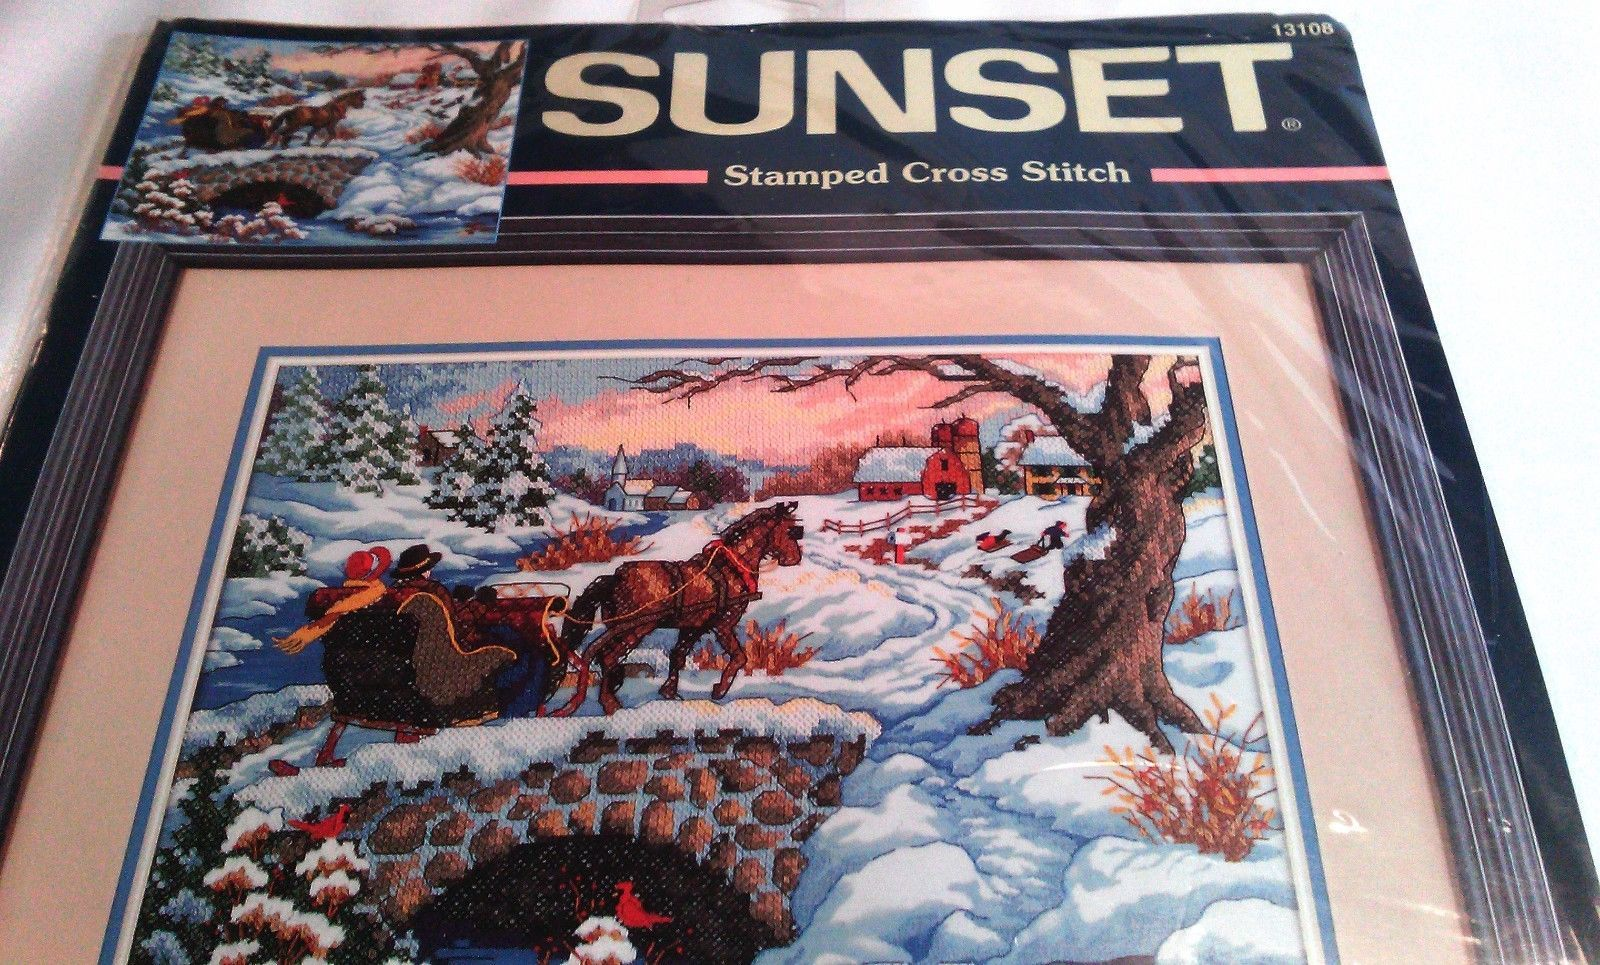 Sunset Cross Stitch Wintry Ride Horse Sleigh Ride Sunset No. 13108 Stamped Cross